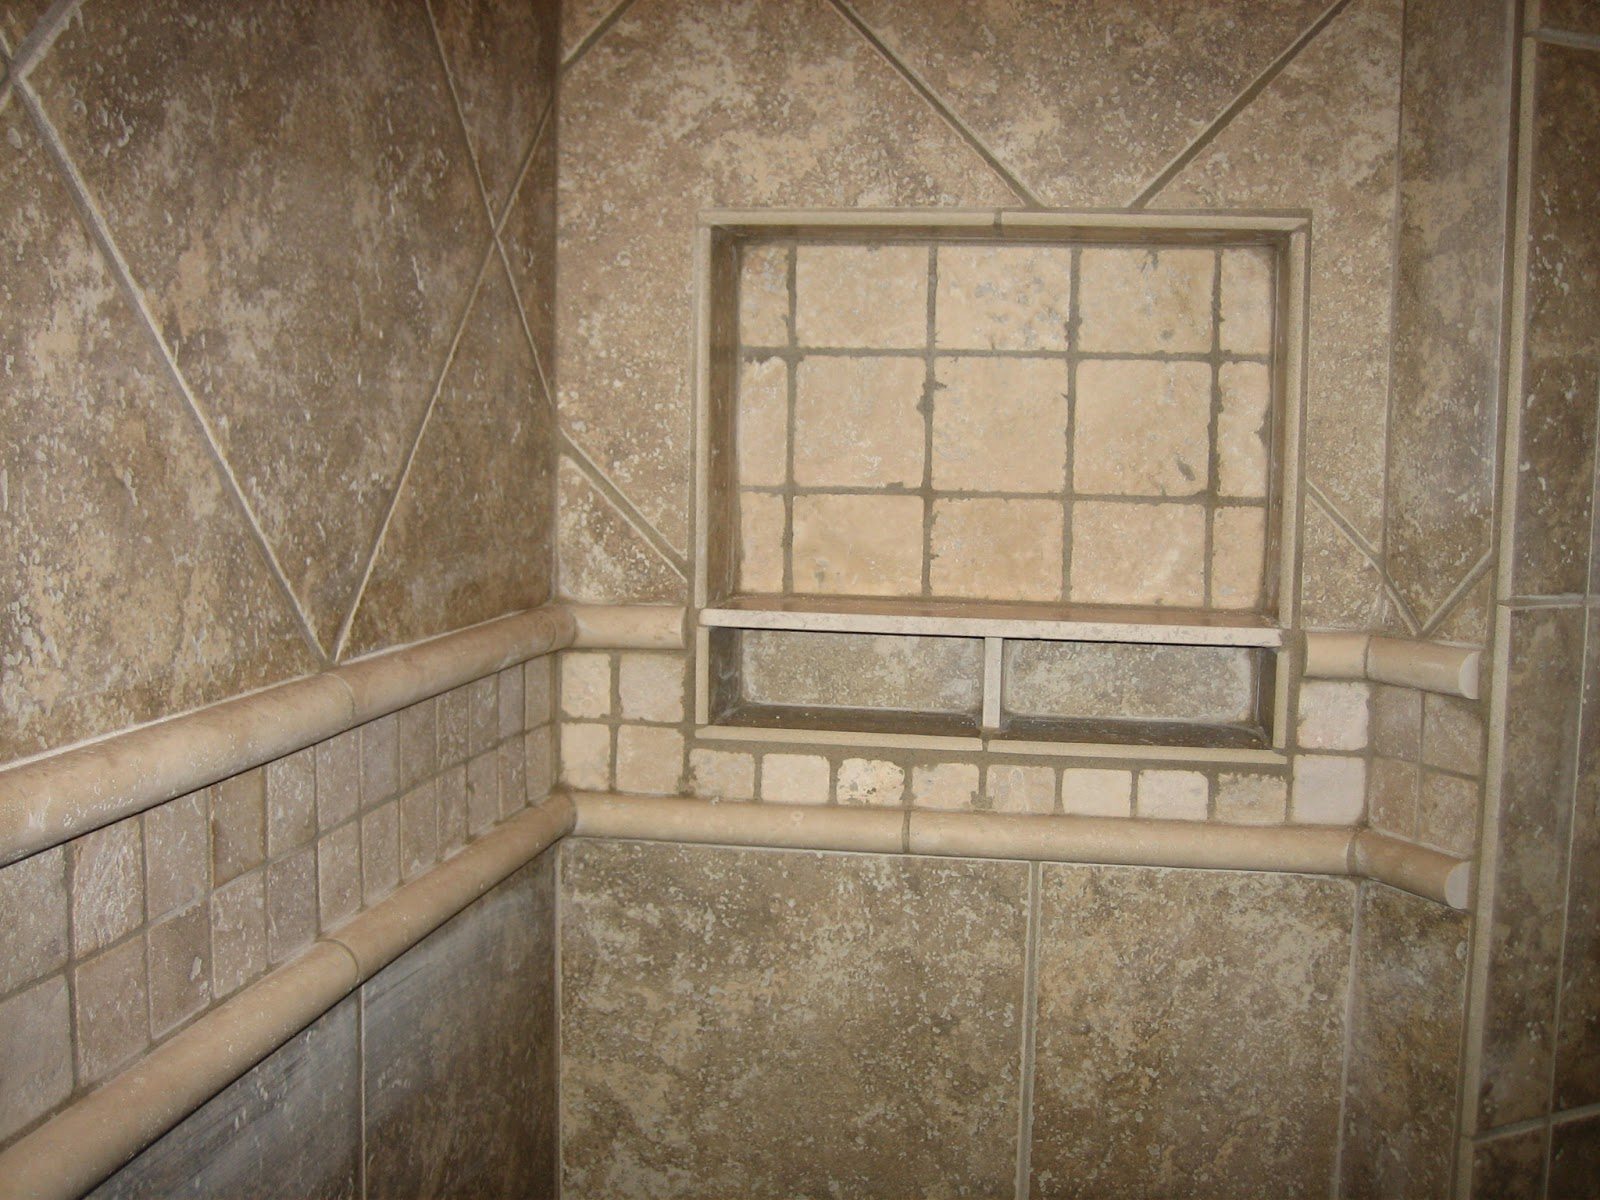 Beau Interesting Grey Tile Shower Ideas For Small Shower Space Completed With  Small Planted Shelves